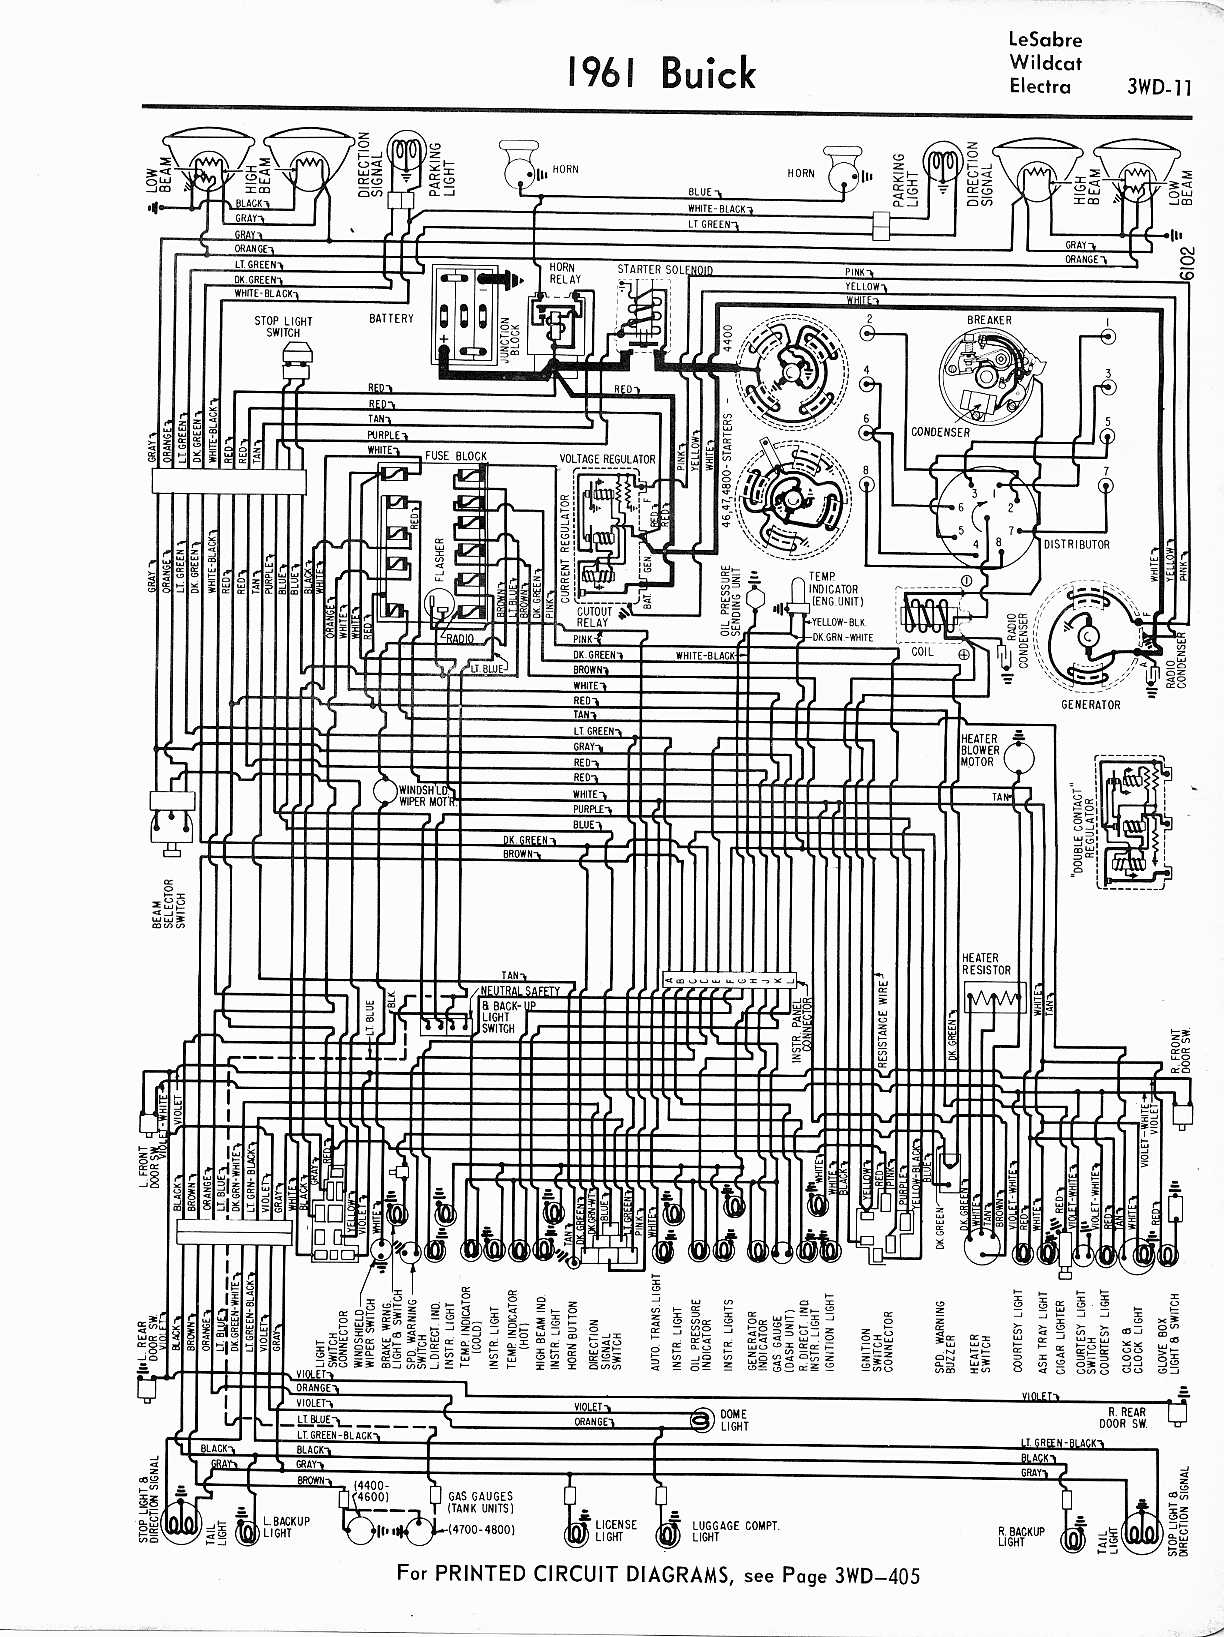 MWireBuic65_3WD 011 buick wiring diagrams 1957 1965 ta2000 thermostat wiring diagram at virtualis.co